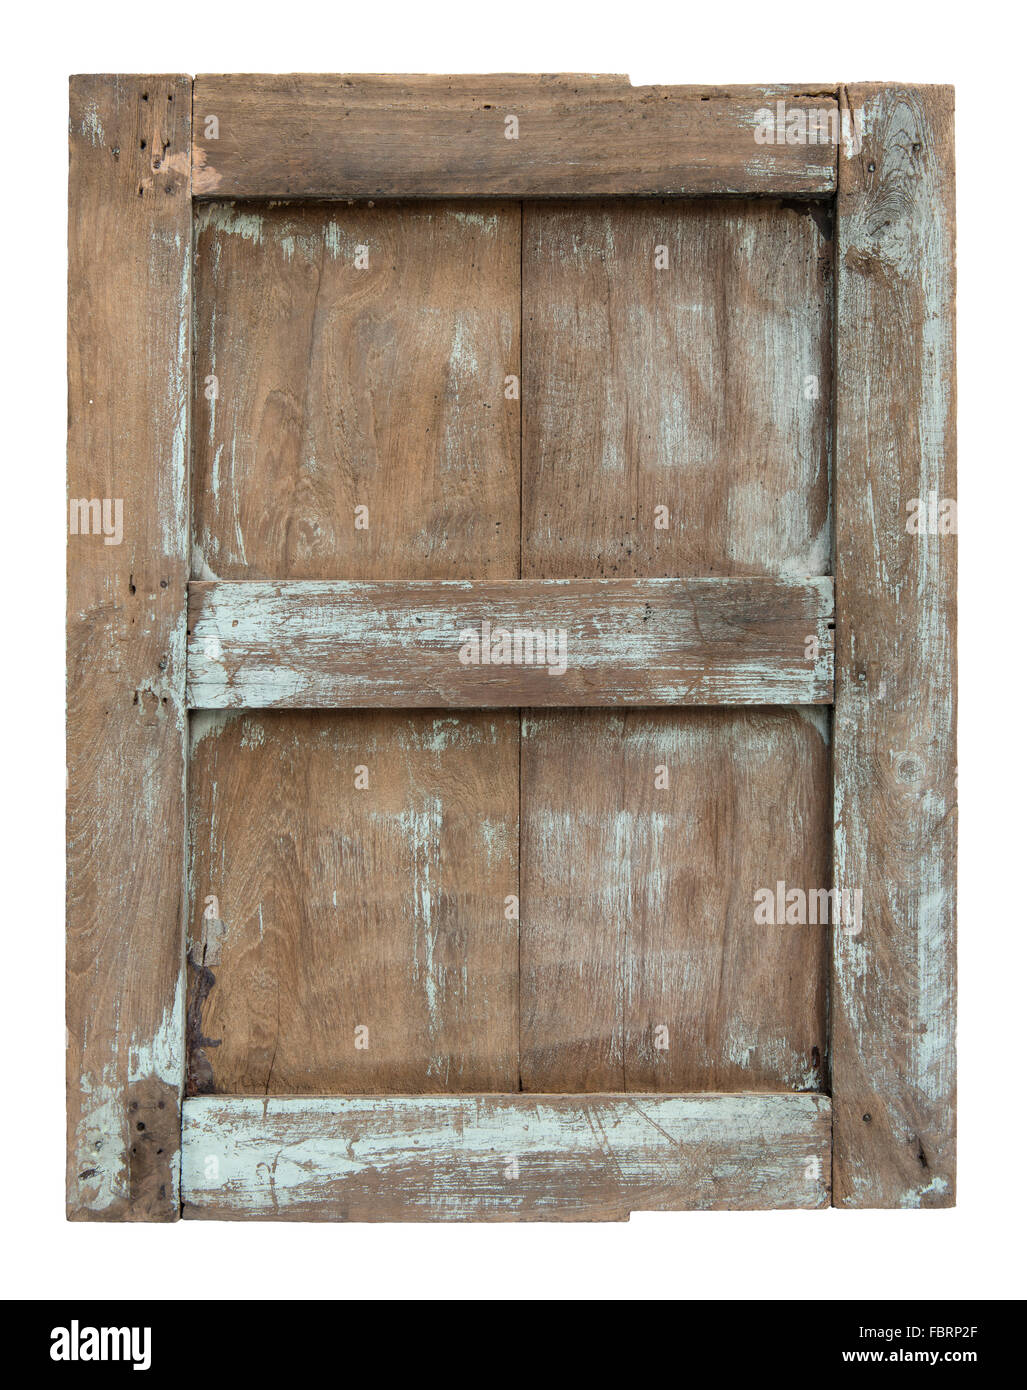 Old wooden window frame isolated on white background Stock